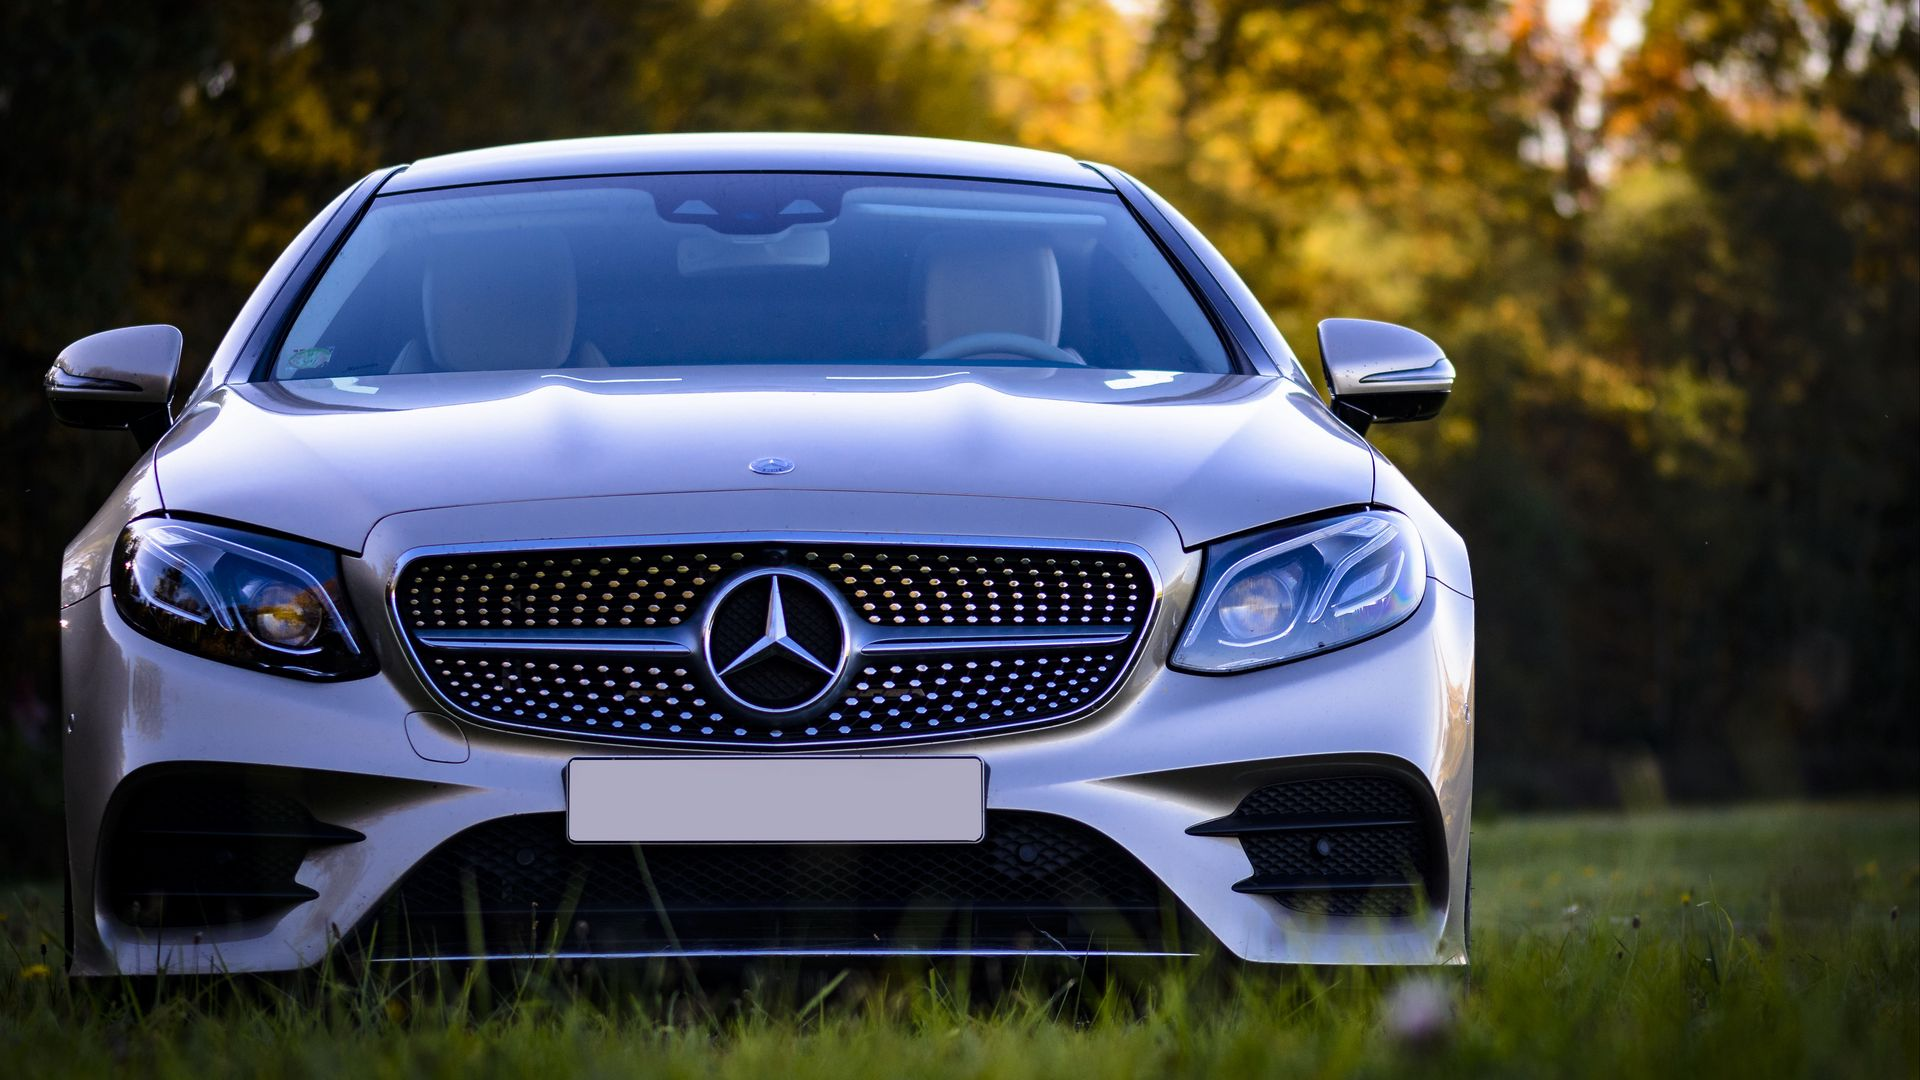 You can also shuffle all wallpapers, or only your favorite mercedes wallpapers. Wallpaper Mercedes Benz Mercedes Silver Front View Mercedes Benz 1920x1080 Download Hd Wallpaper Wallpapertip